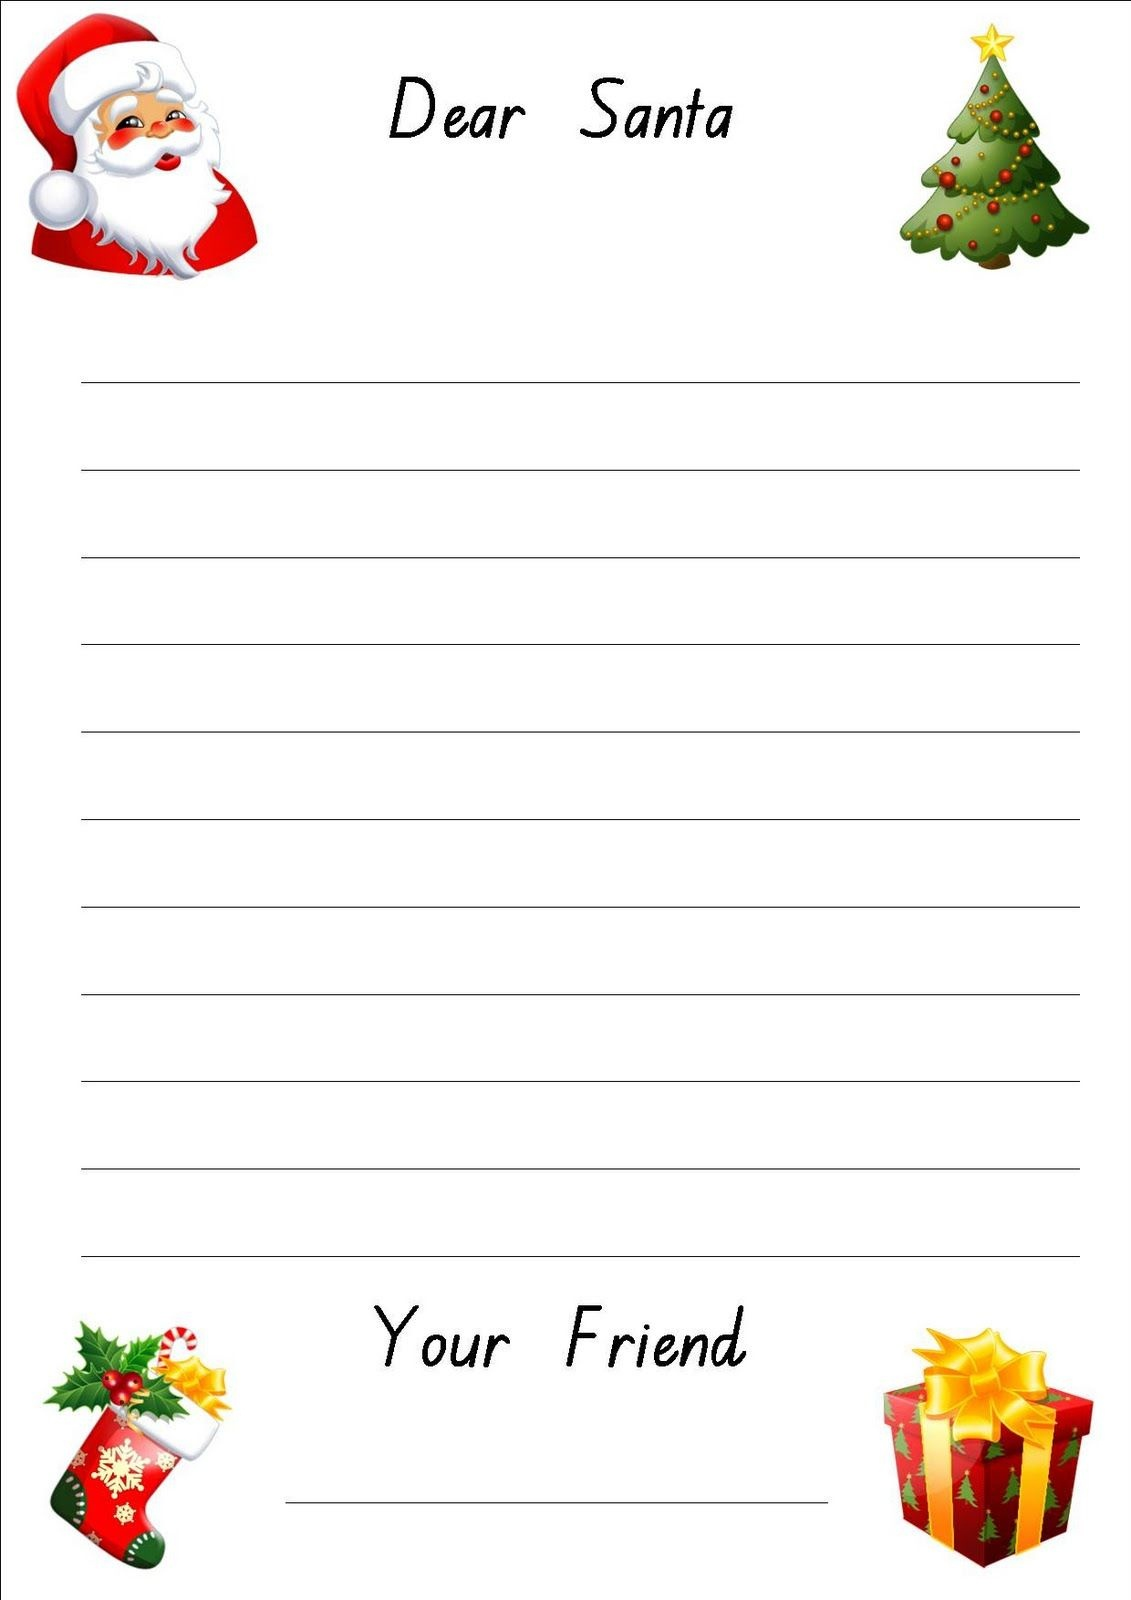 Lined Christmas Paper For Letters | Do Your Kids Write Letters To - Free Printable Christmas Writing Paper With Lines